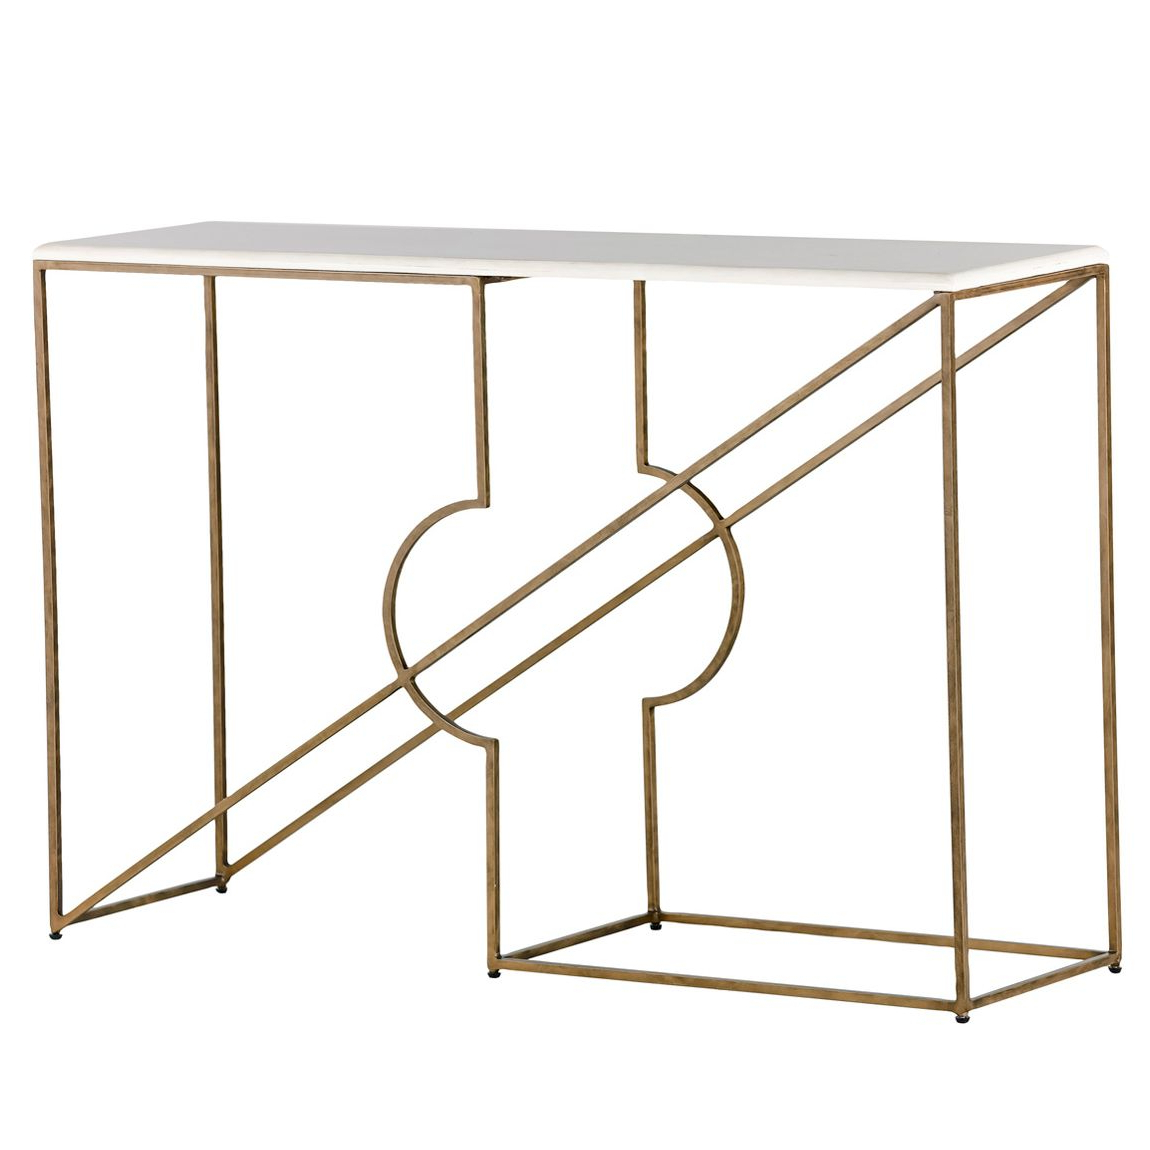 Gabby Furniture Galileo Console Table #laylagrayce | Laylagrayce Within Ventana Display Console Tables (View 20 of 20)